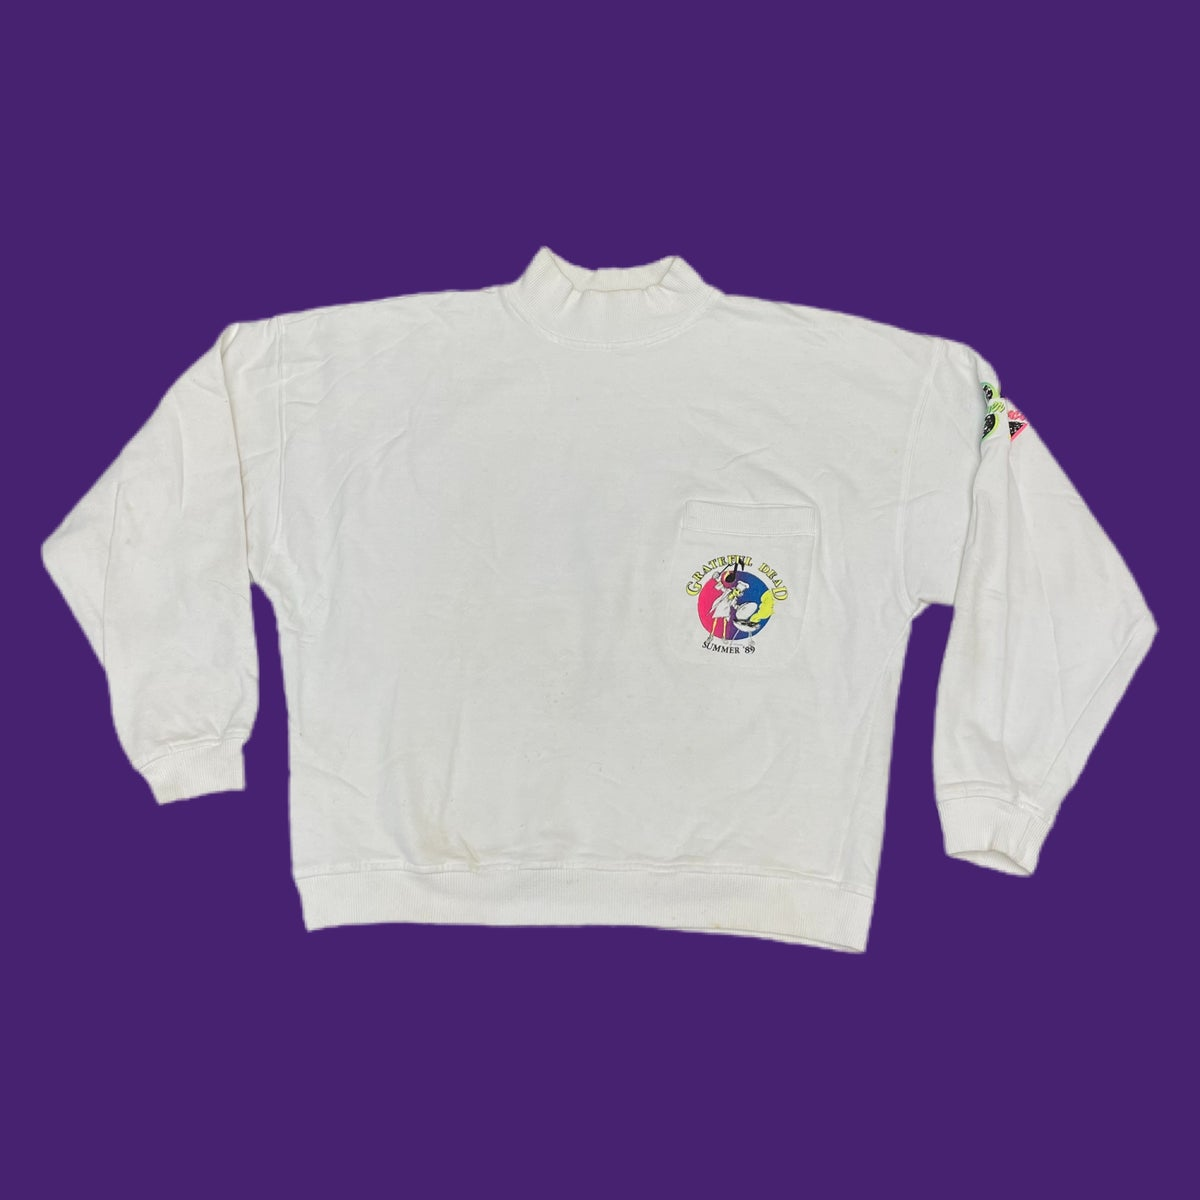 Original Vintage Grateful Dead Alpine Valley 1989 Crew/Staff Sweatshirt! LARGE